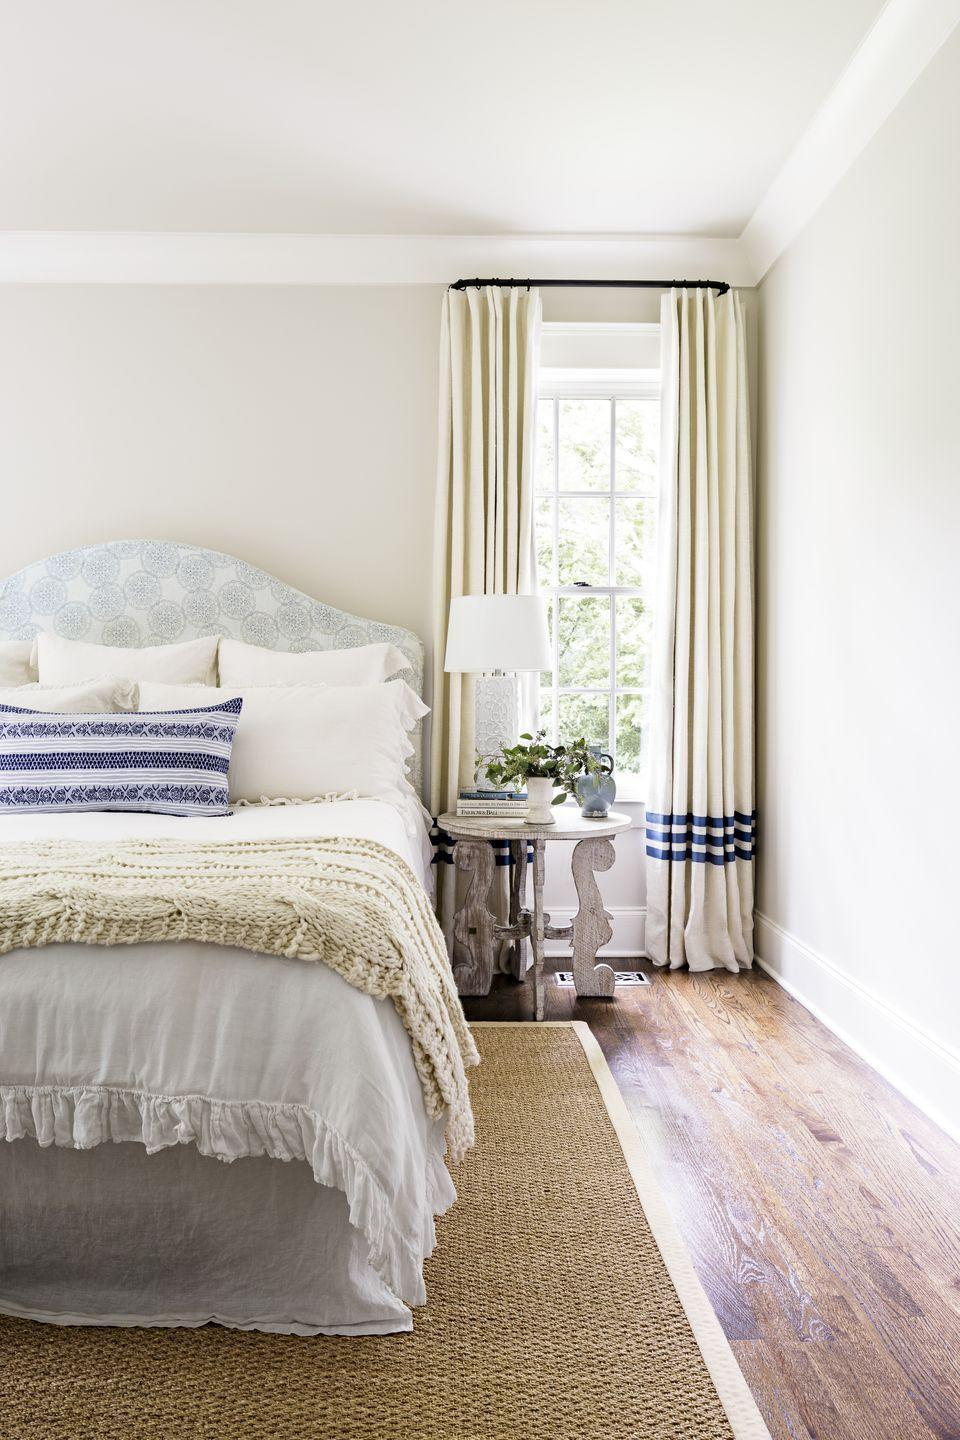 """<p>A soft neutral bedroom provides a calming spot for sleep. For a hint of """"there, but not there"""" color choose a warm off-white for bedroom walls. The soft hue looks great paired with warm white trim (don't go too bright and crisp) as well as a mix of natural materials.</p><p><strong>Get the Look: </strong><br>Wall Paint Color: <a href=""""https://go.redirectingat.com?id=74968X1596630&url=https%3A%2F%2Fwww.homedepot.com%2Fb%2FBEHR%2FSwiss-Coffee%2FN-5yc1vZ3mwZ1z0uoih&sref=https%3A%2F%2Fwww.countryliving.com%2Fremodeling-renovation%2Fhome-makeovers%2Fg32468539%2Fbest-bedroom-paint-colors-ideas%2F"""" rel=""""nofollow noopener"""" target=""""_blank"""" data-ylk=""""slk:Swiss Coffee by Behr"""" class=""""link rapid-noclick-resp"""">Swiss Coffee by Behr</a></p>"""